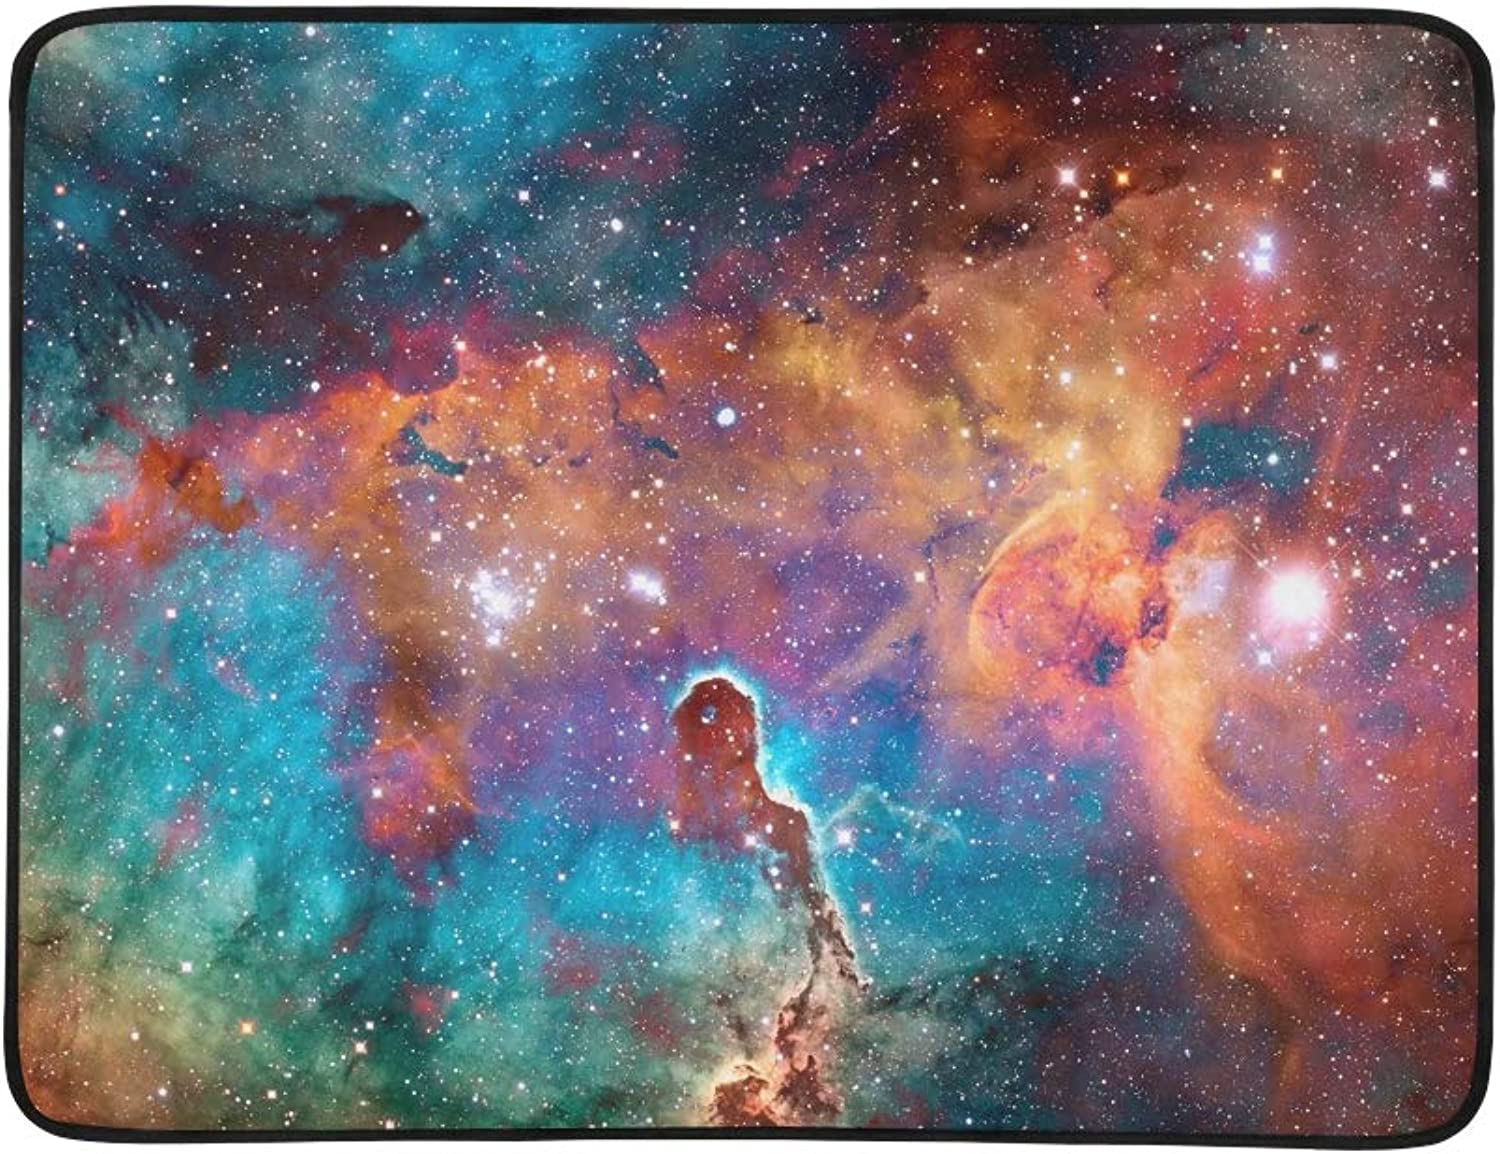 colorful Deep Space Universe Concept Portable and Foldable Blanket Mat 60x78 Inch Handy Mat for Camping Picnic Beach Indoor Outdoor Travel